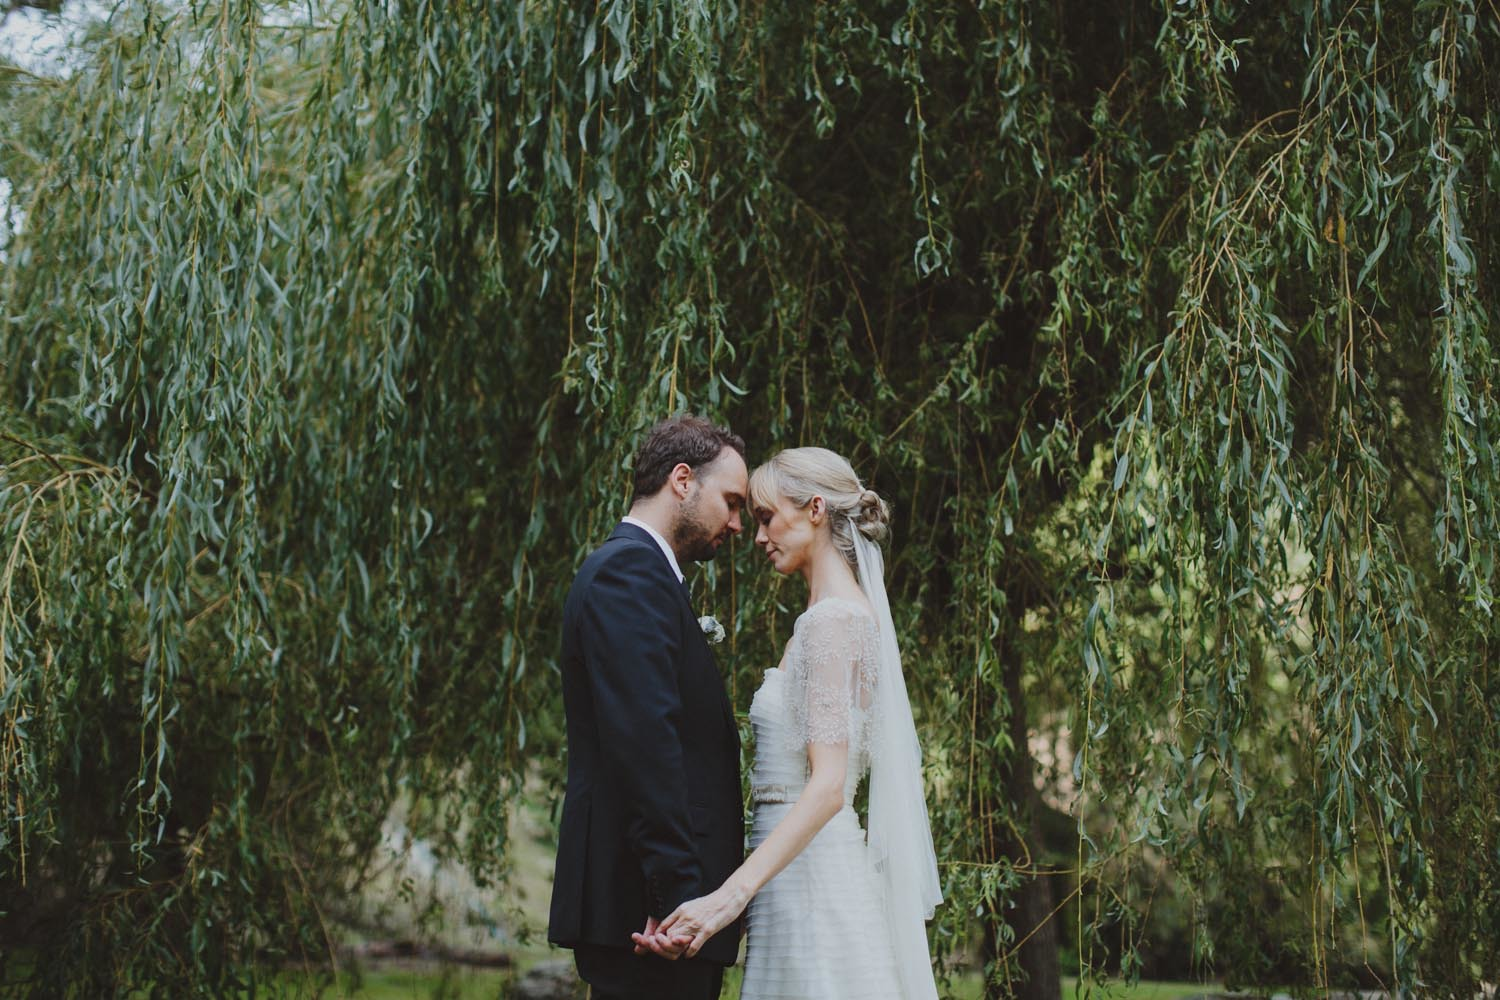 justin_aaron_queenstown_thelby_domain_new_zealand_wedding_sally_lachlan-88.jpg